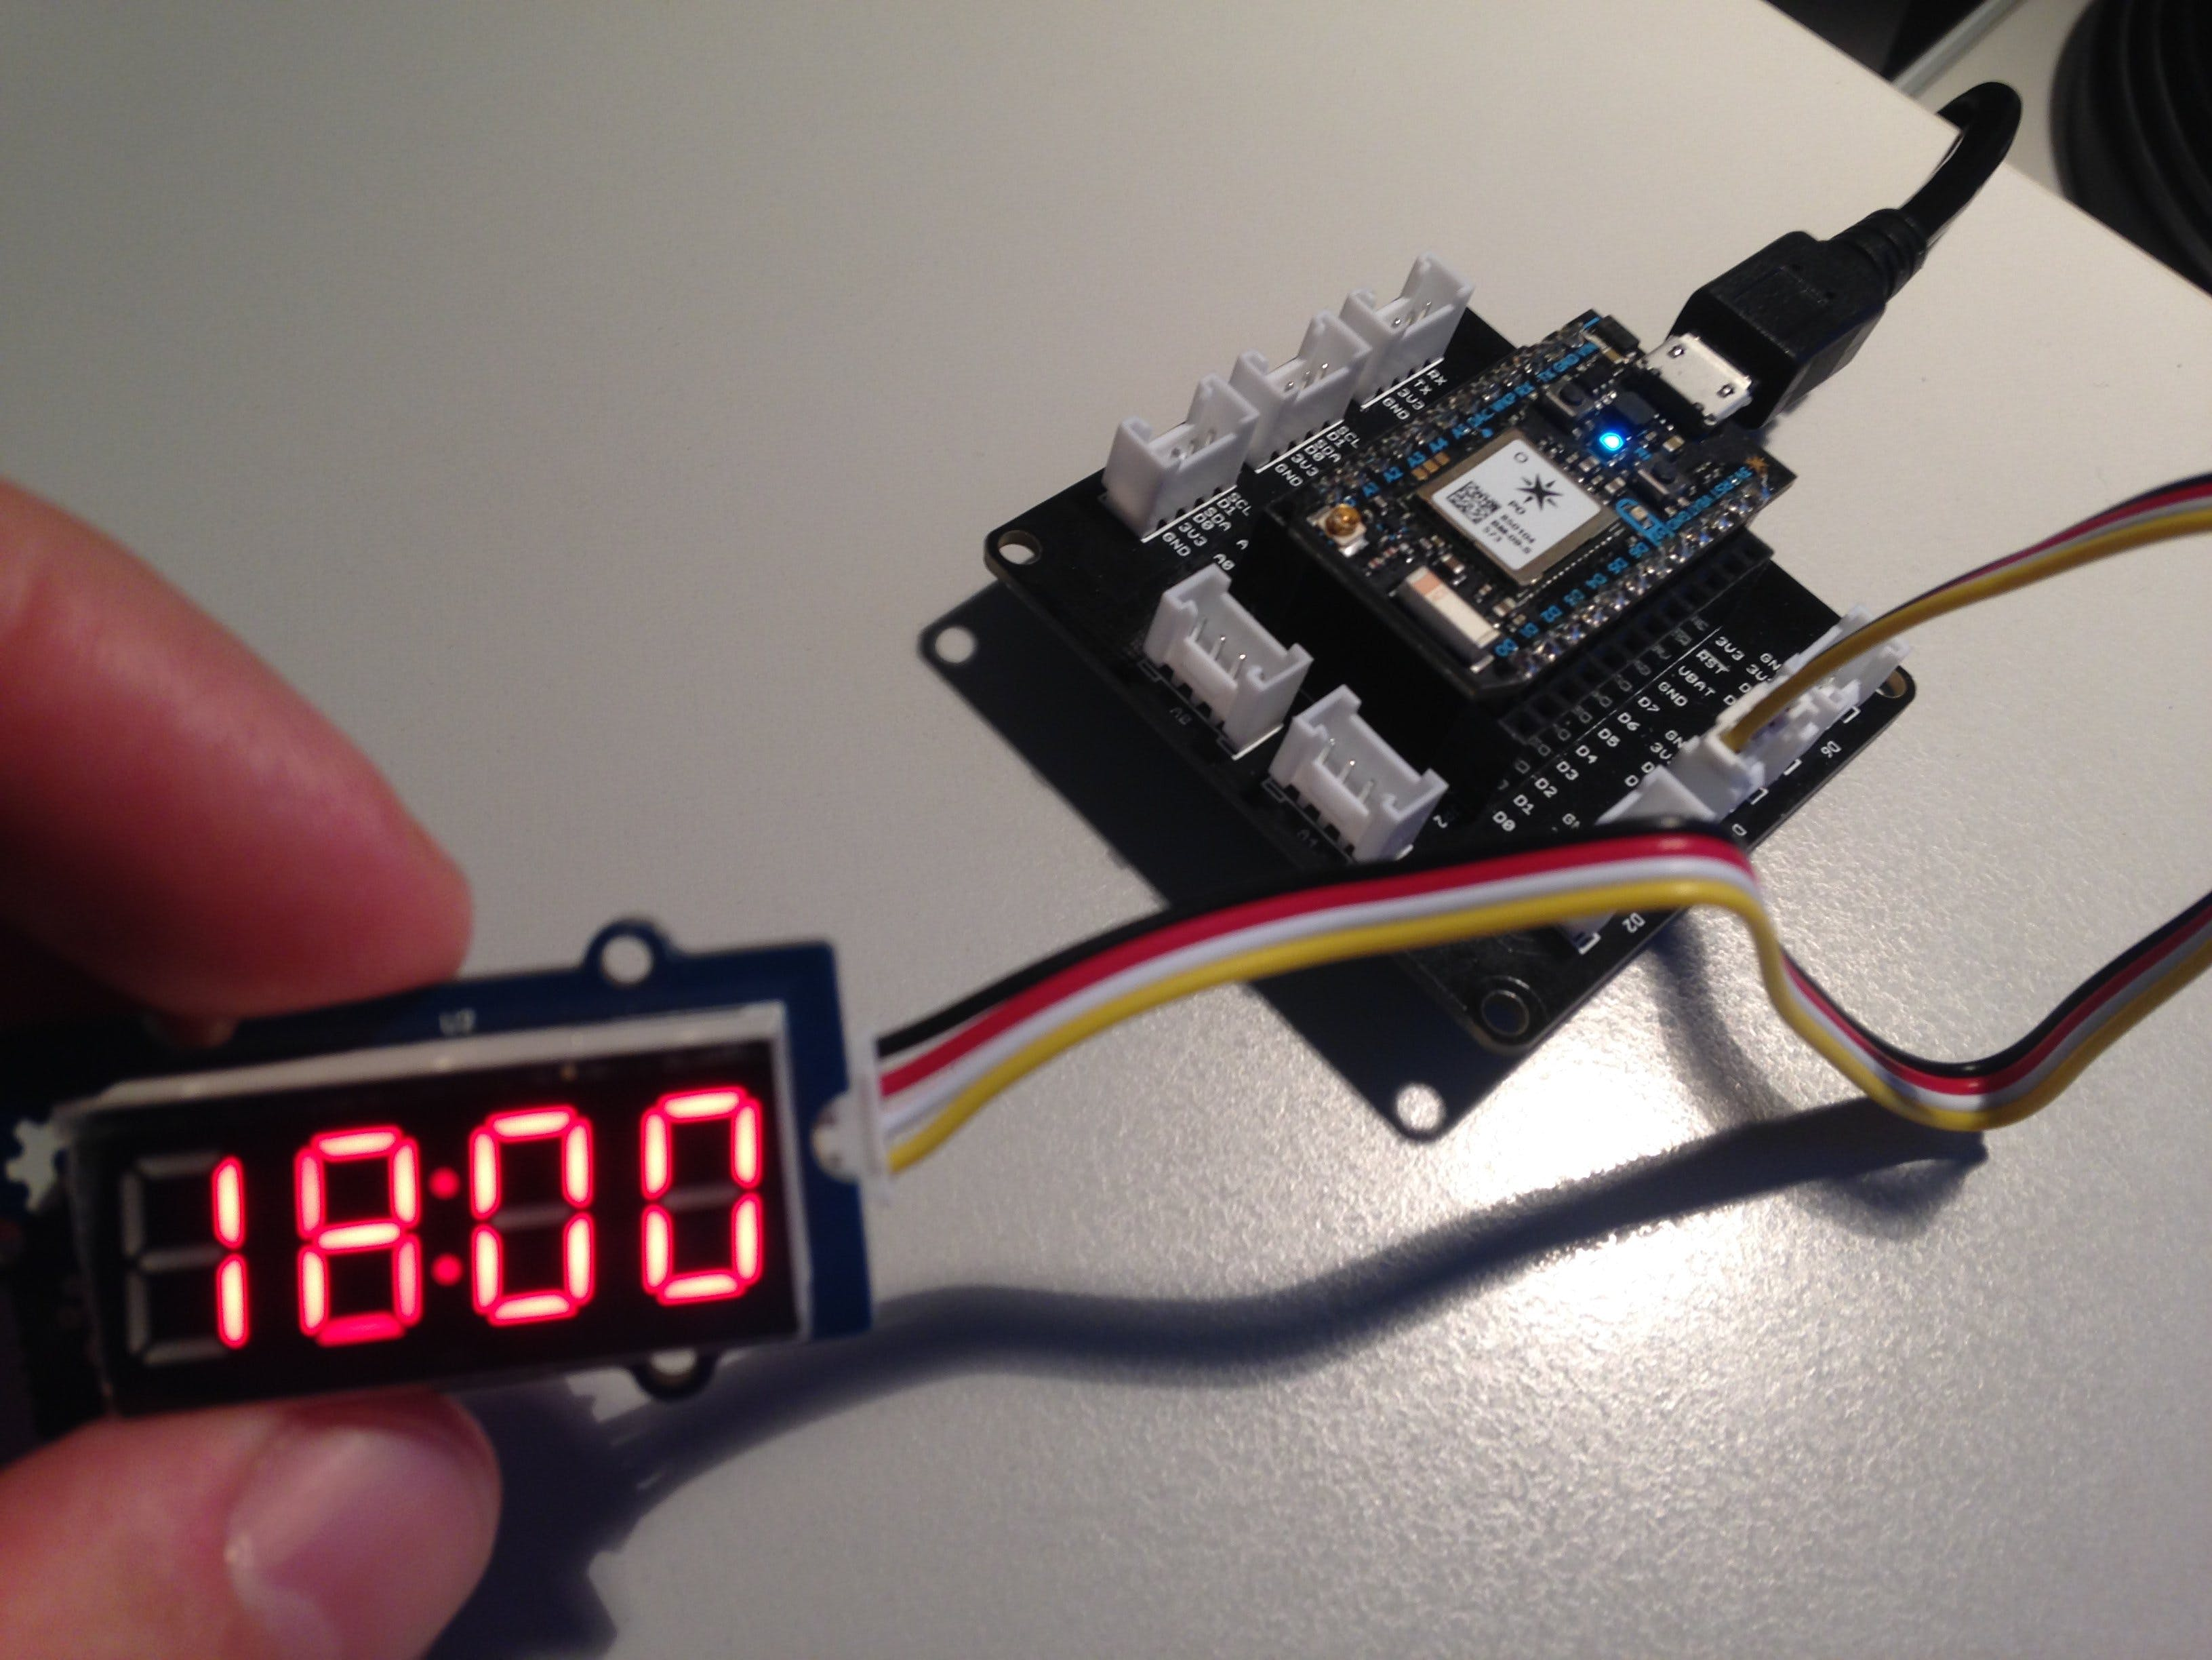 Clock - Grove 4-digit Display Using Photon